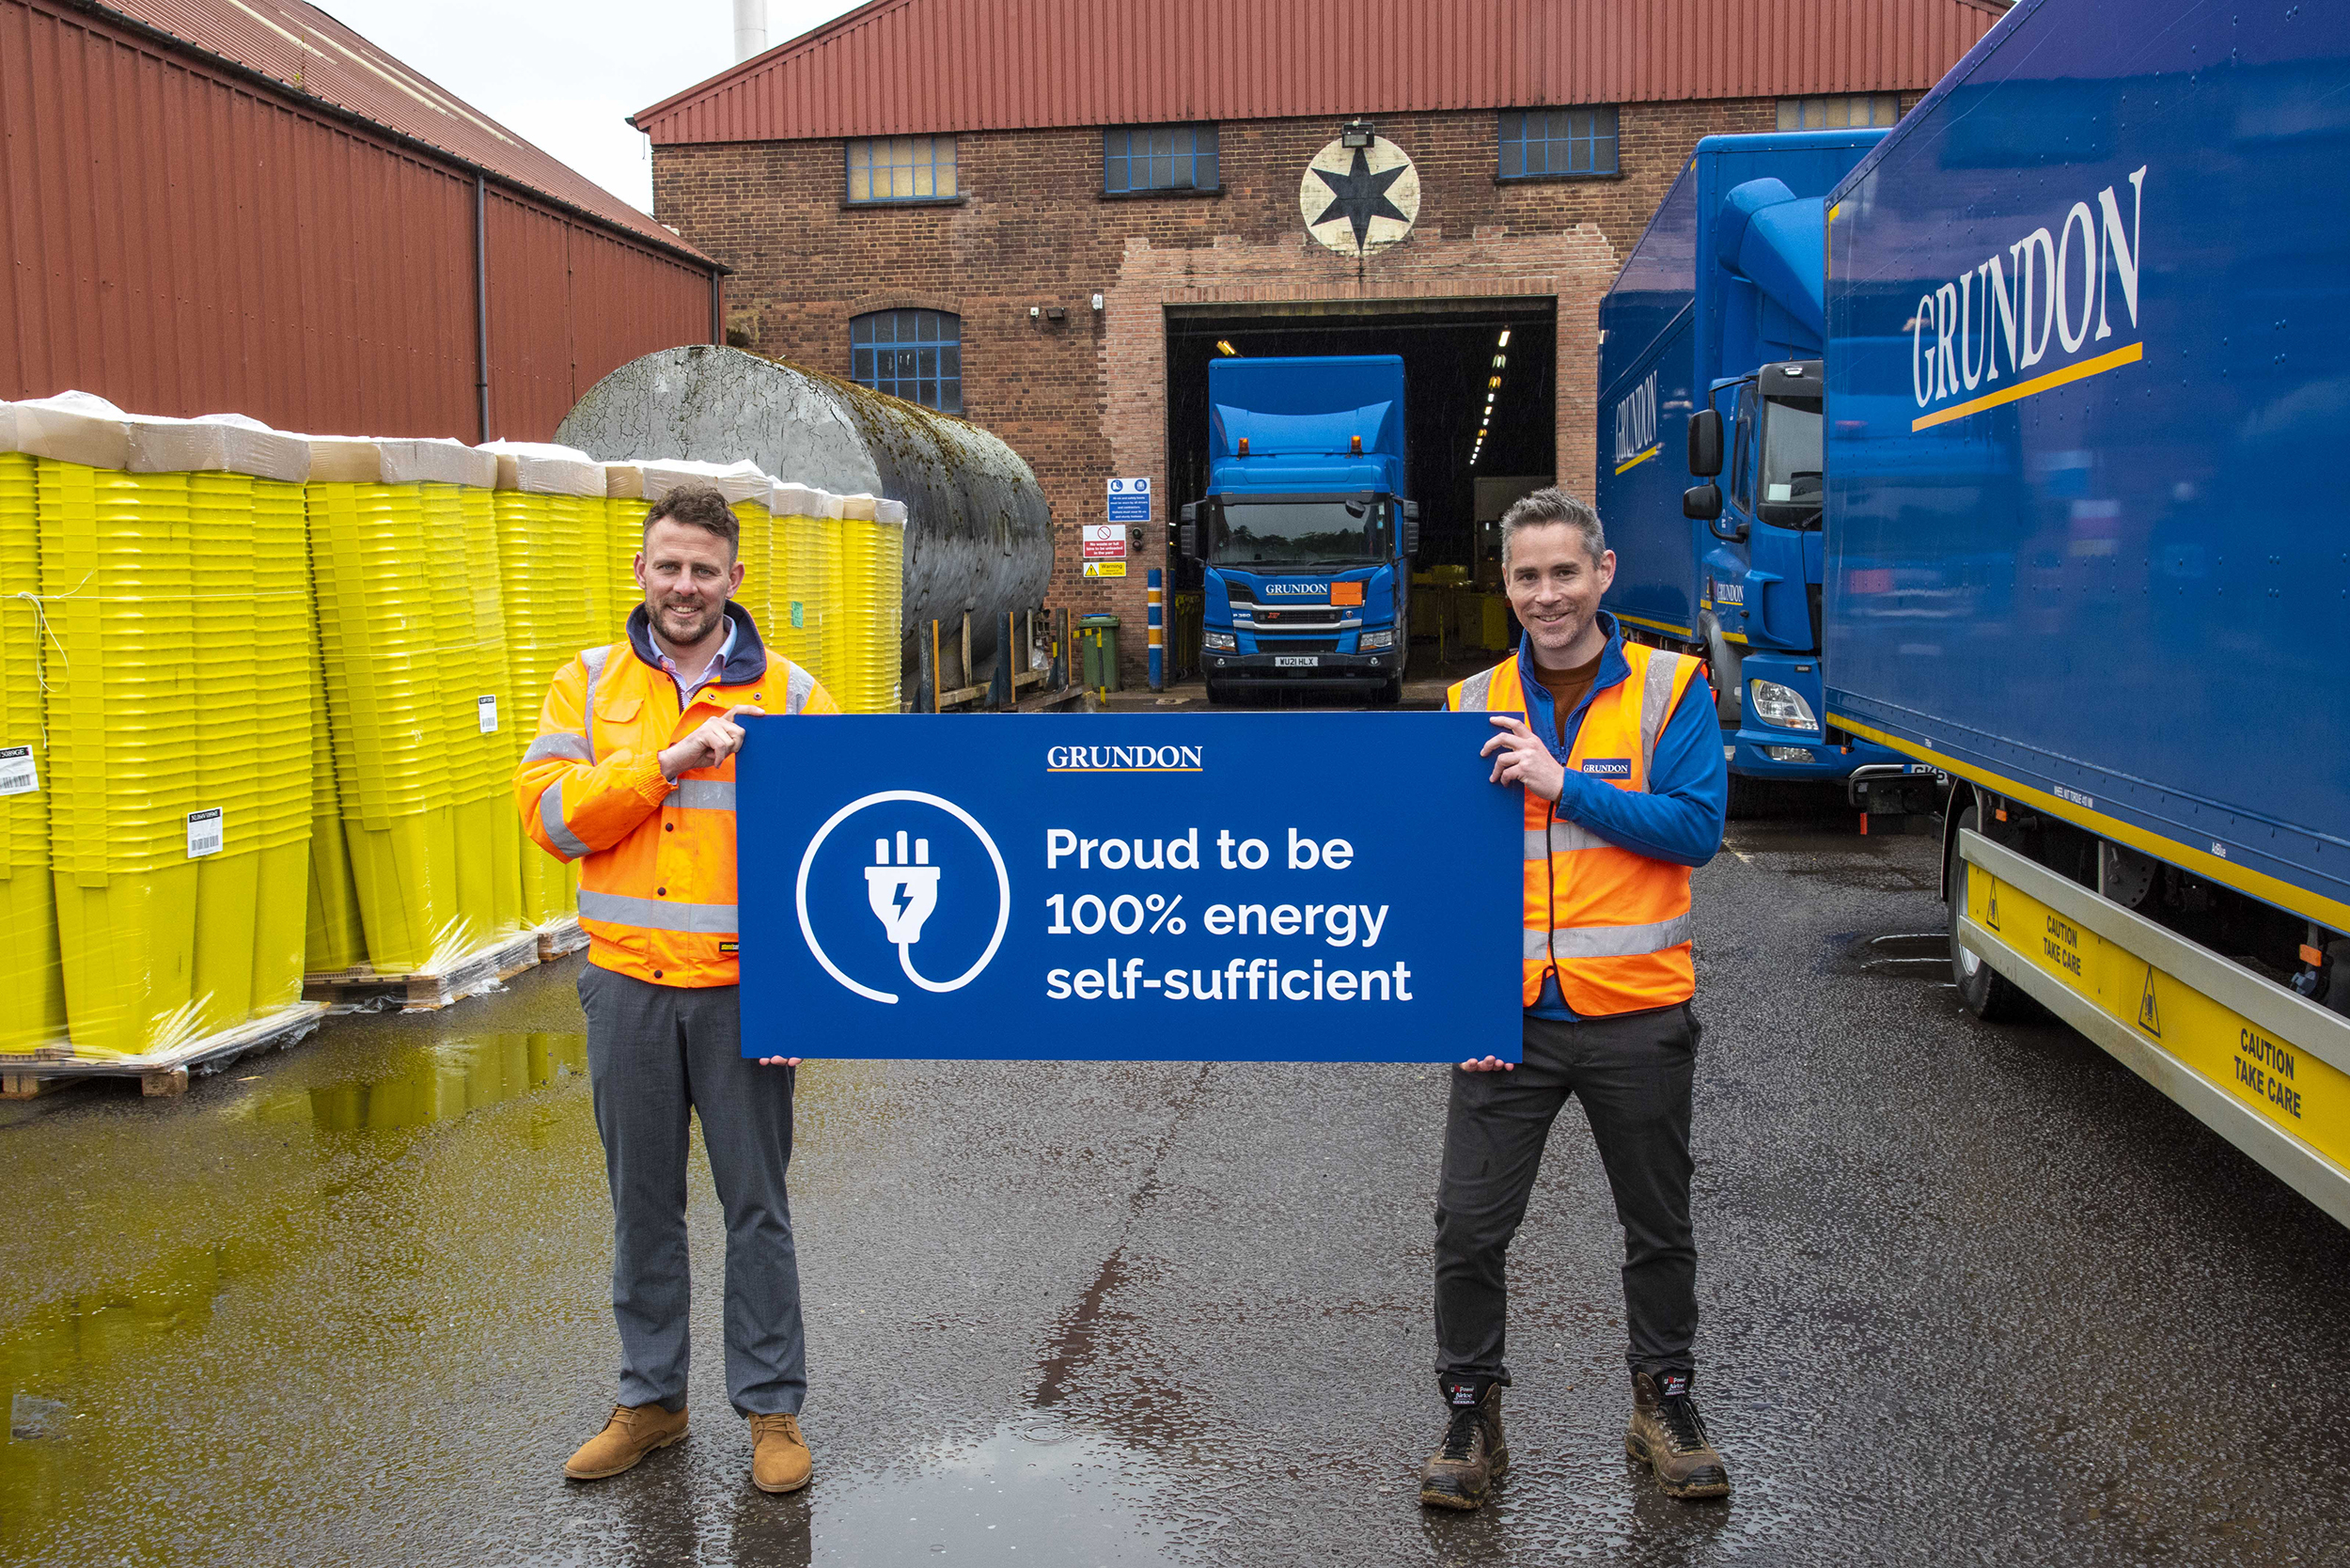 Phil Steer, Commercial Manager – Clinical (left) and James Gilbert, Environment & Energy Manager (right) , celebrate Grundon's clinical waste operation being completely self-sufficient in green energy.